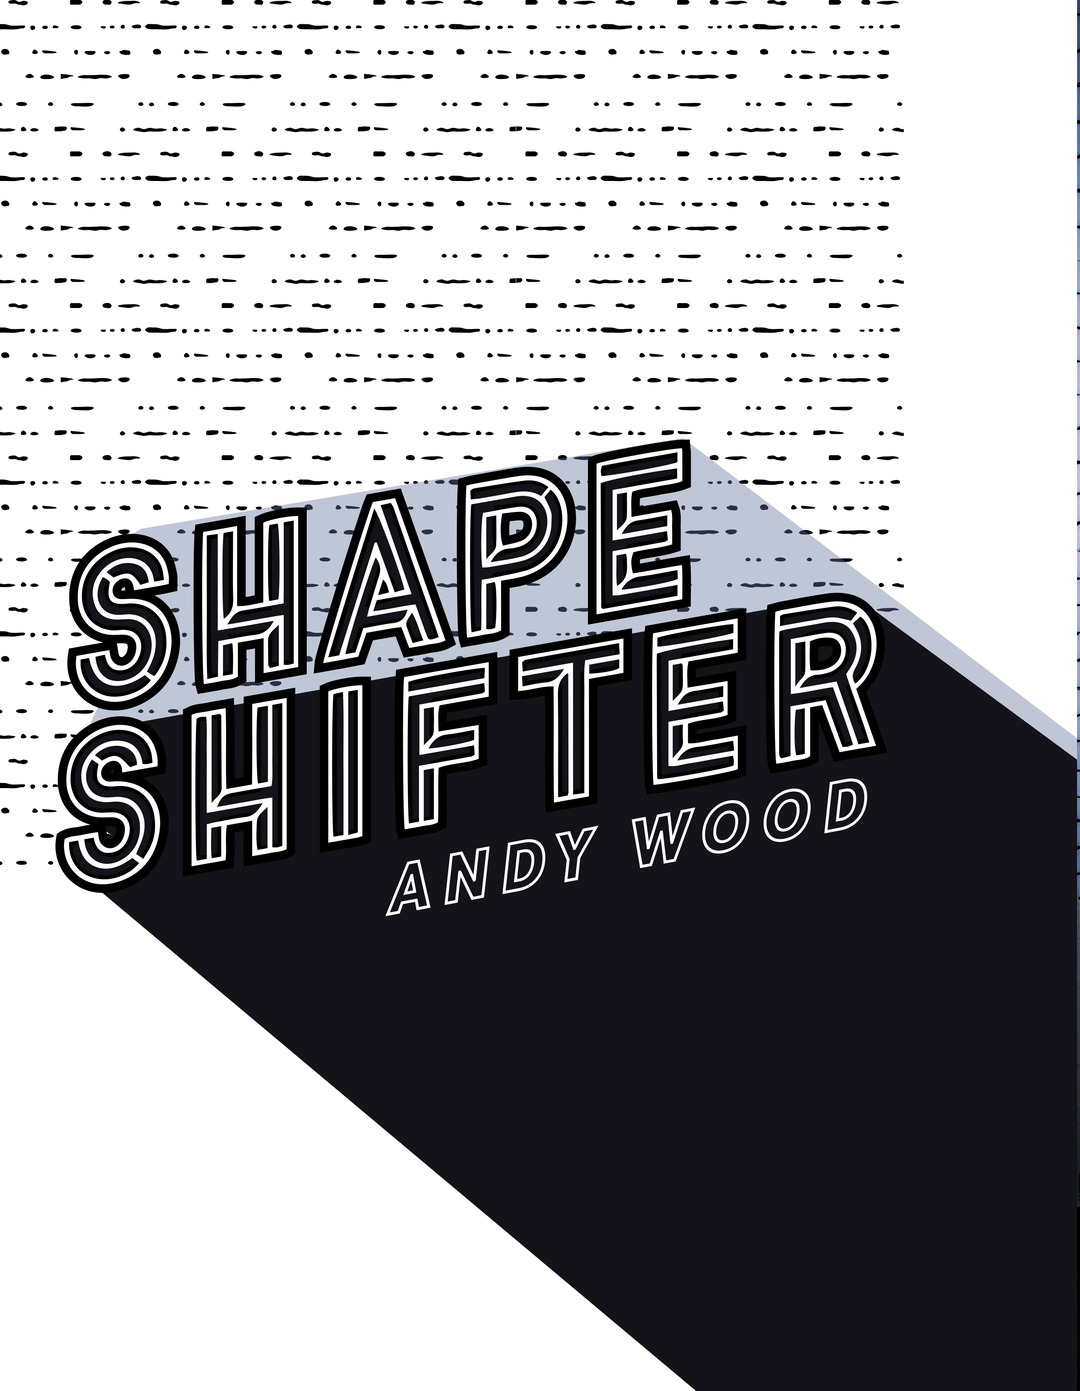 Page 54 of Shape Shifter: Andy Wood